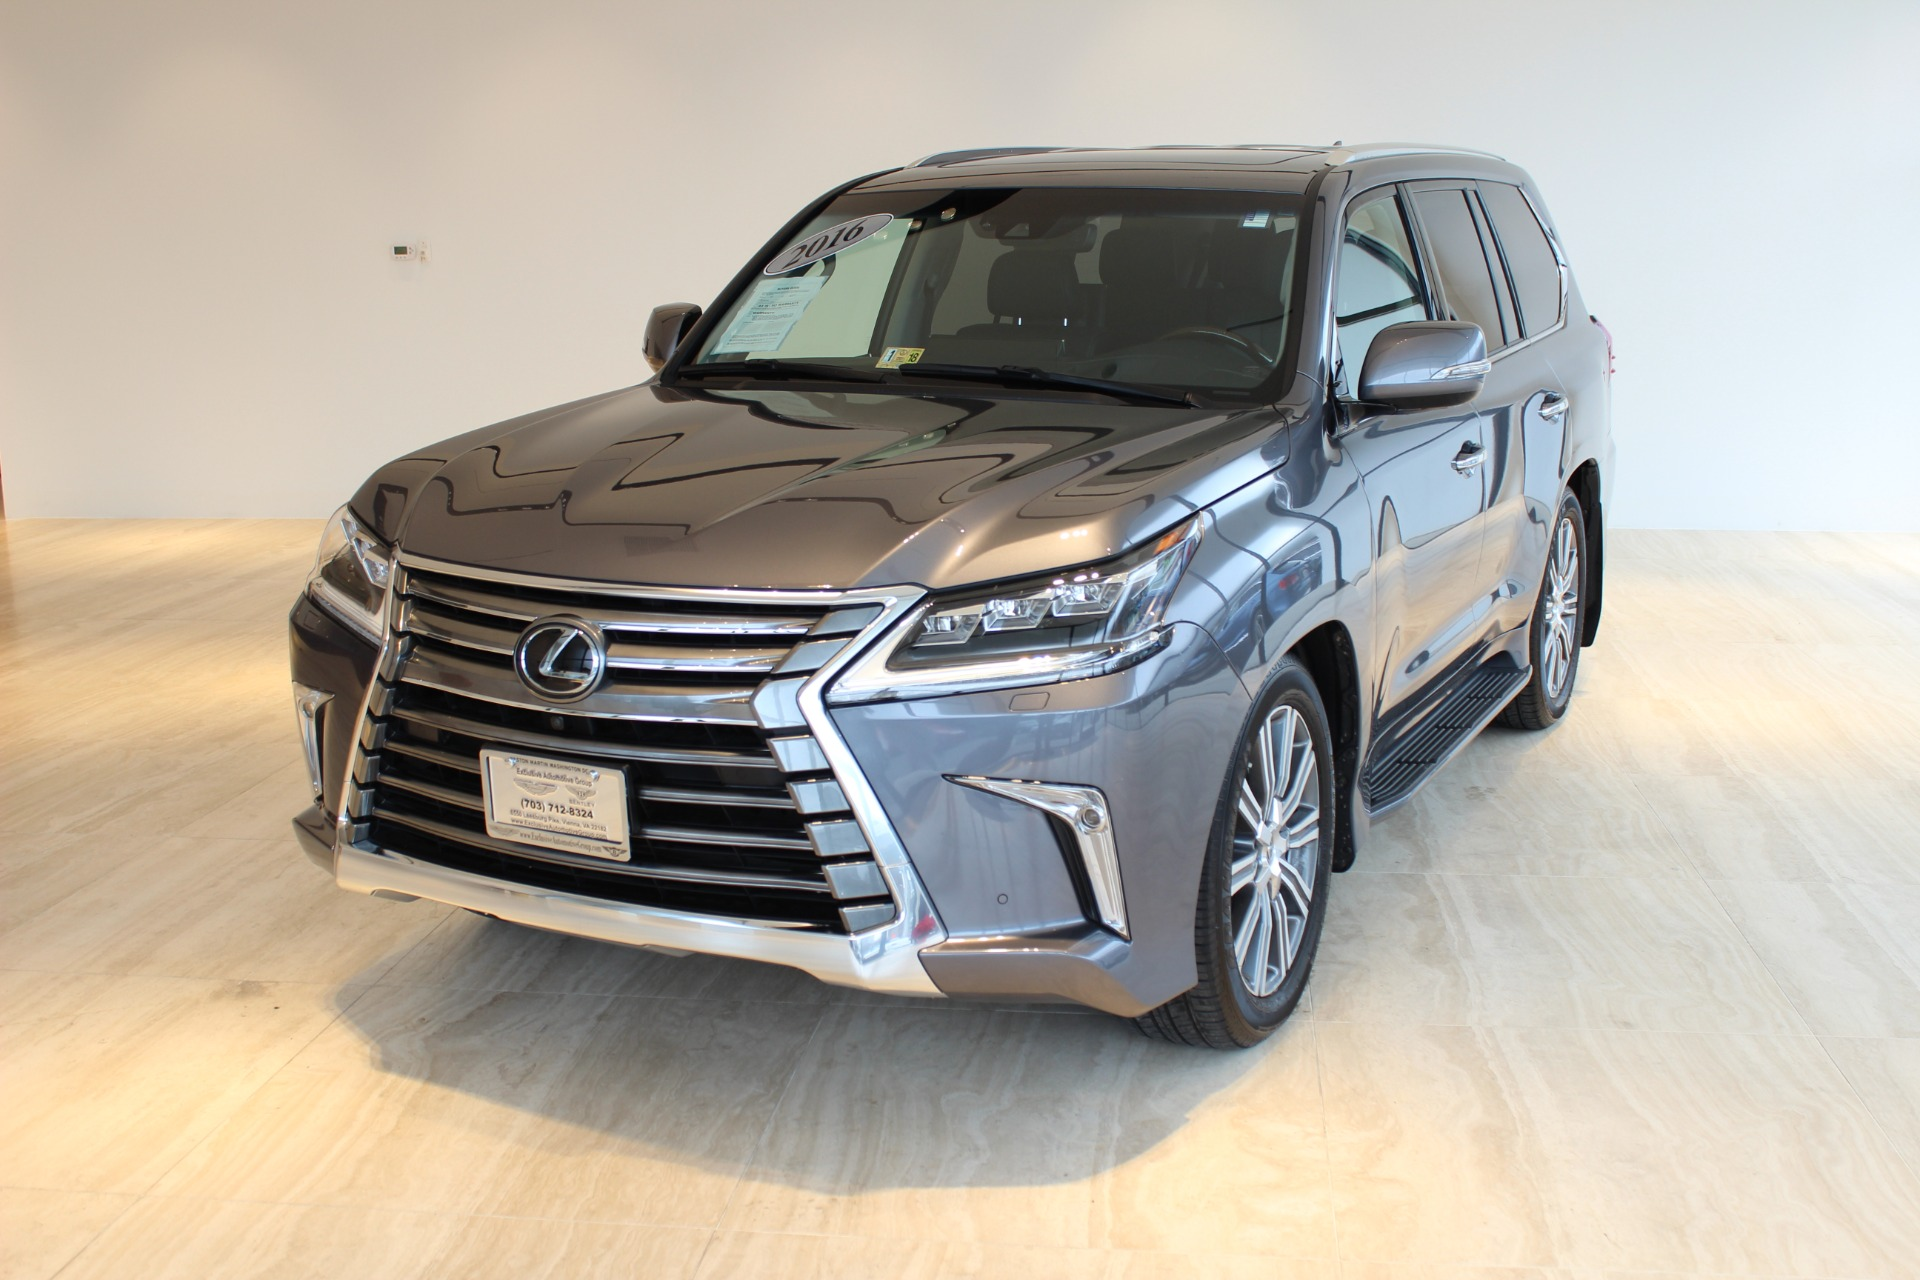 2016 lexus lx 570 stock p092352b for sale near vienna. Black Bedroom Furniture Sets. Home Design Ideas